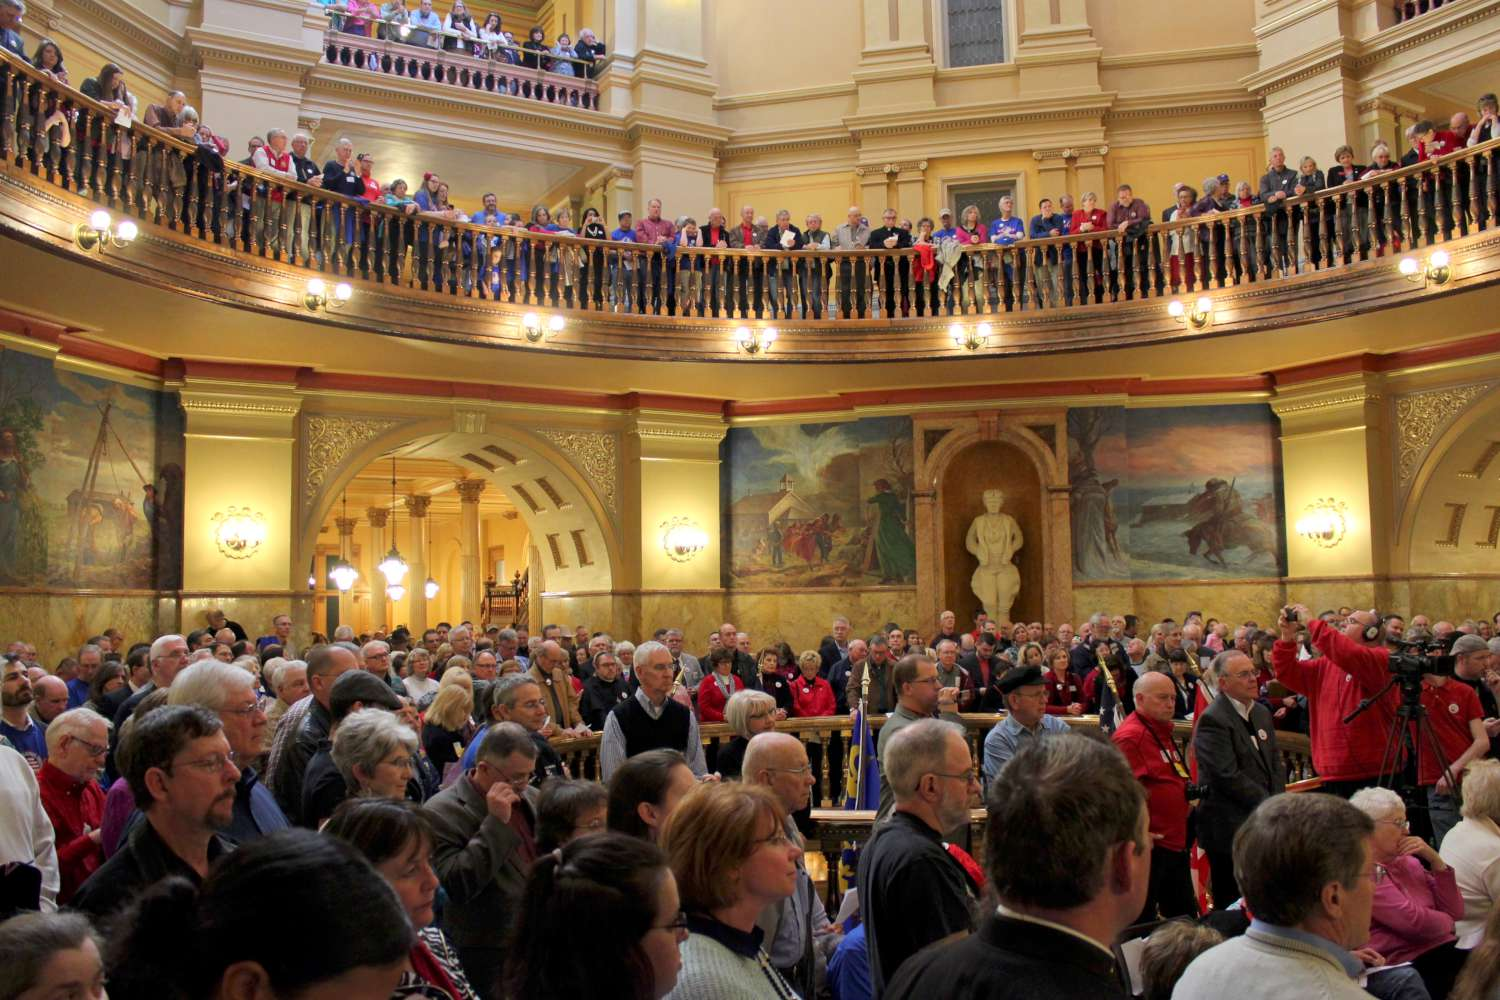 More than 1,000 people packed the Kansas Statehouse rotunda Wednesday for a religious freedom rally.  (Photo by Stephen Koranda)